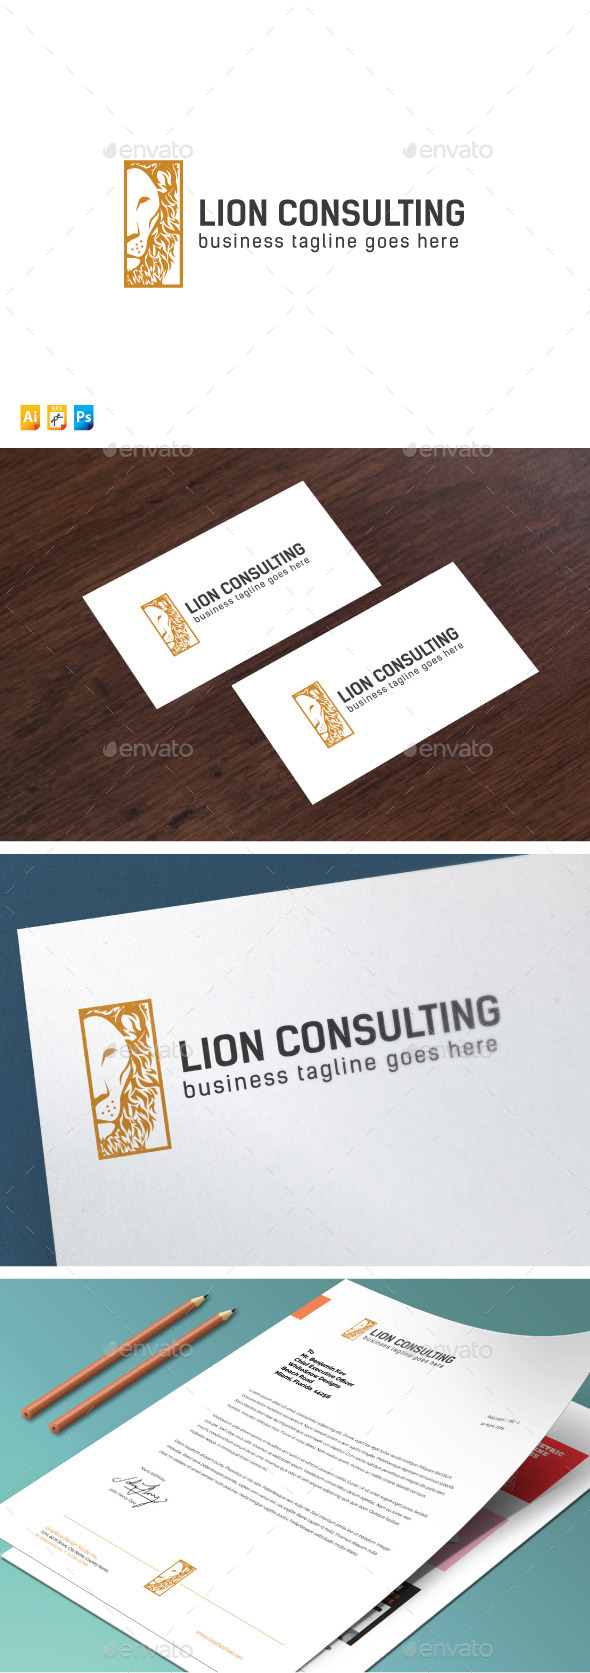 Lion Consulting - Objects Logo Templates